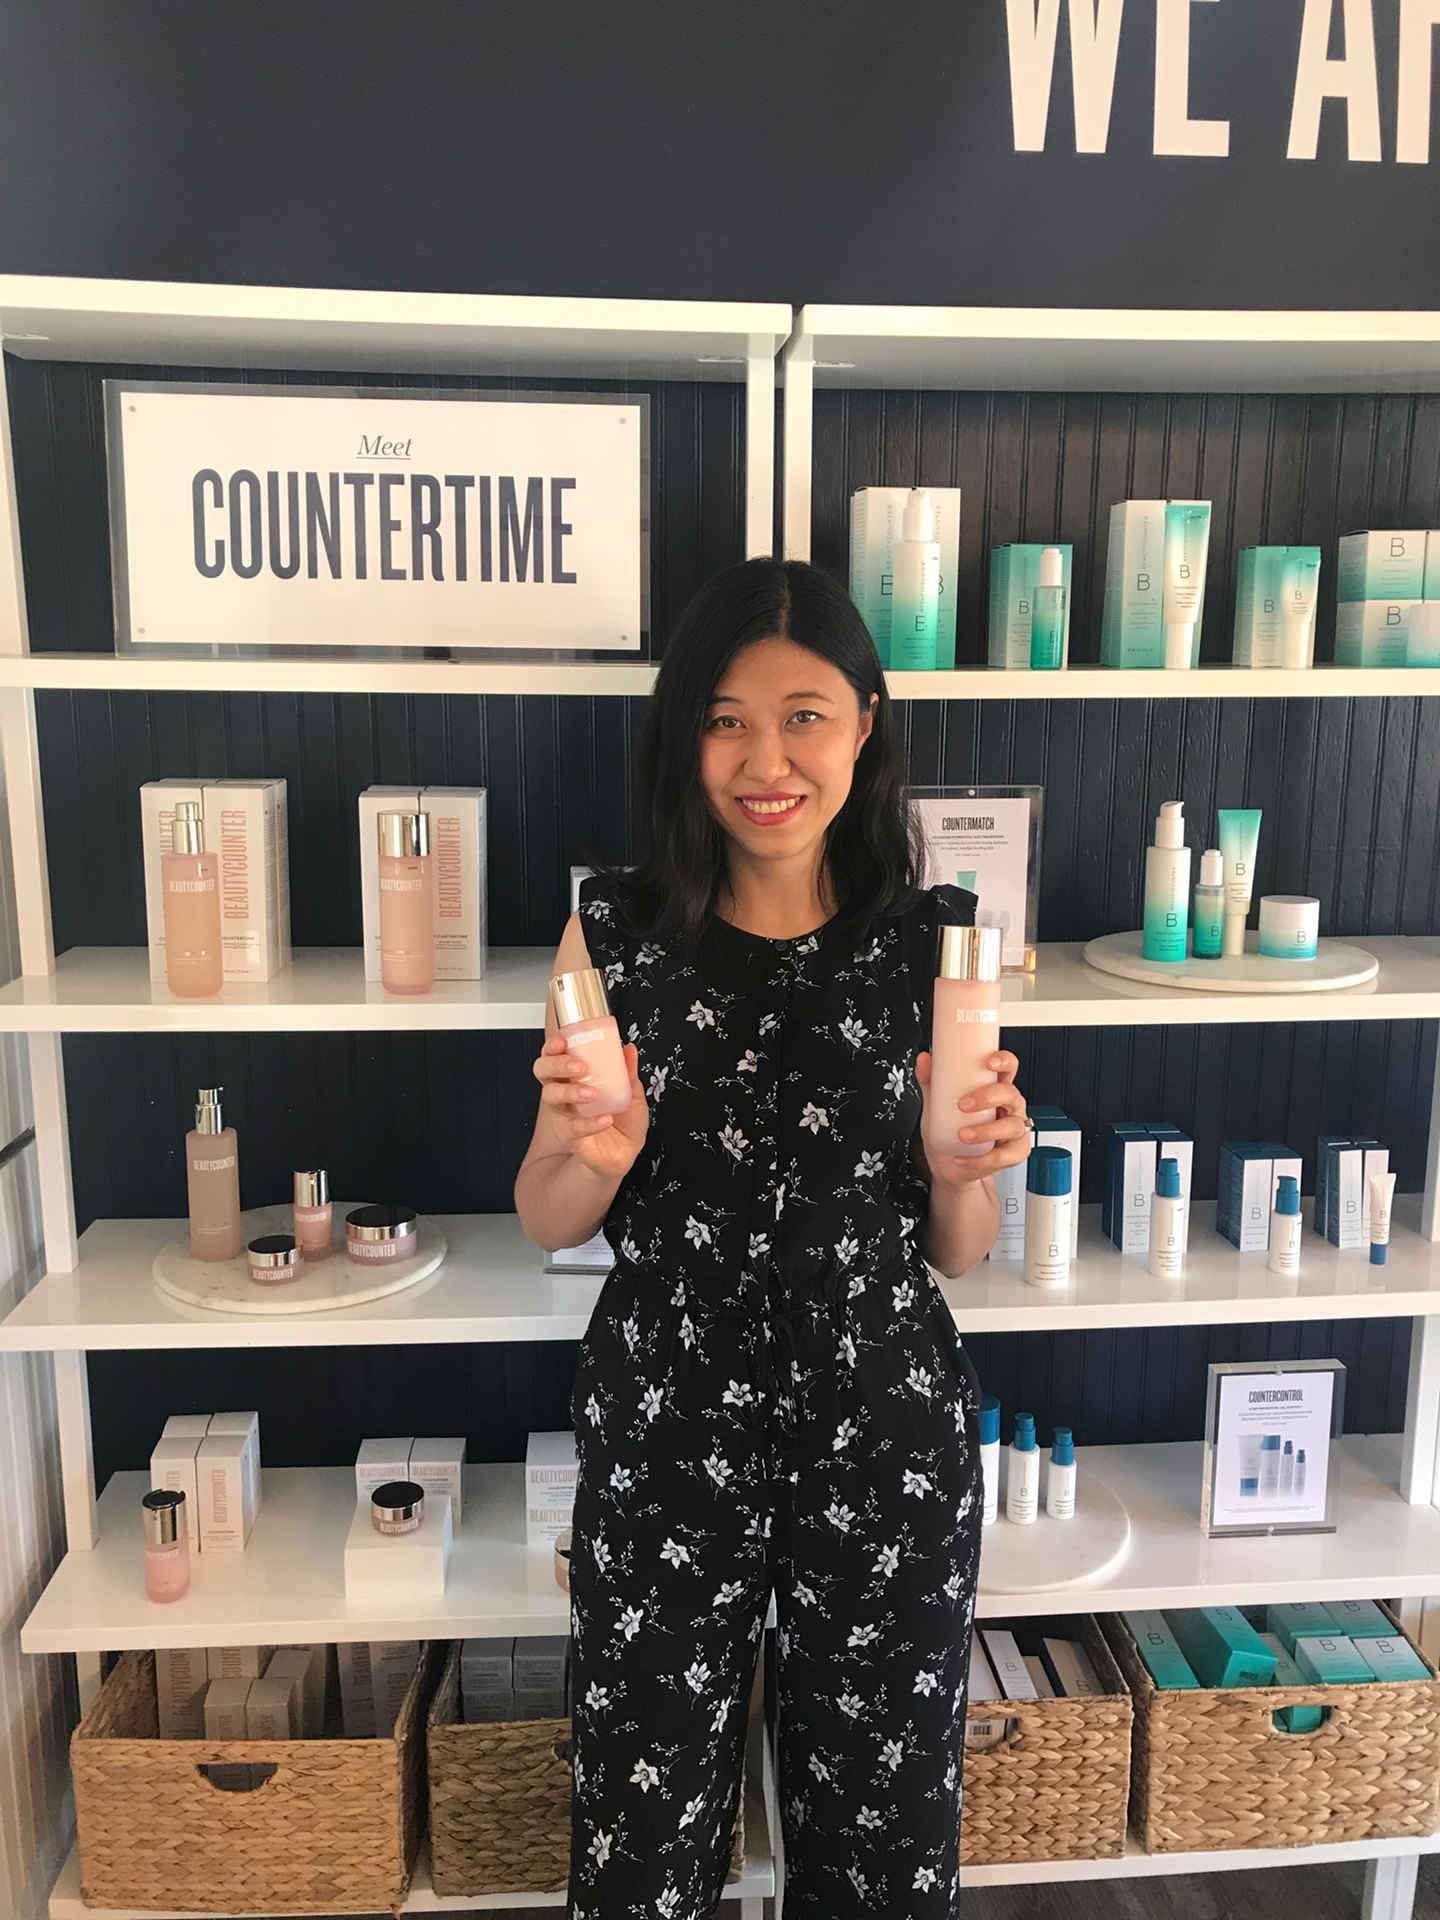 I am holding products in Beautycounter countertime regimen set in the Nantucket store.